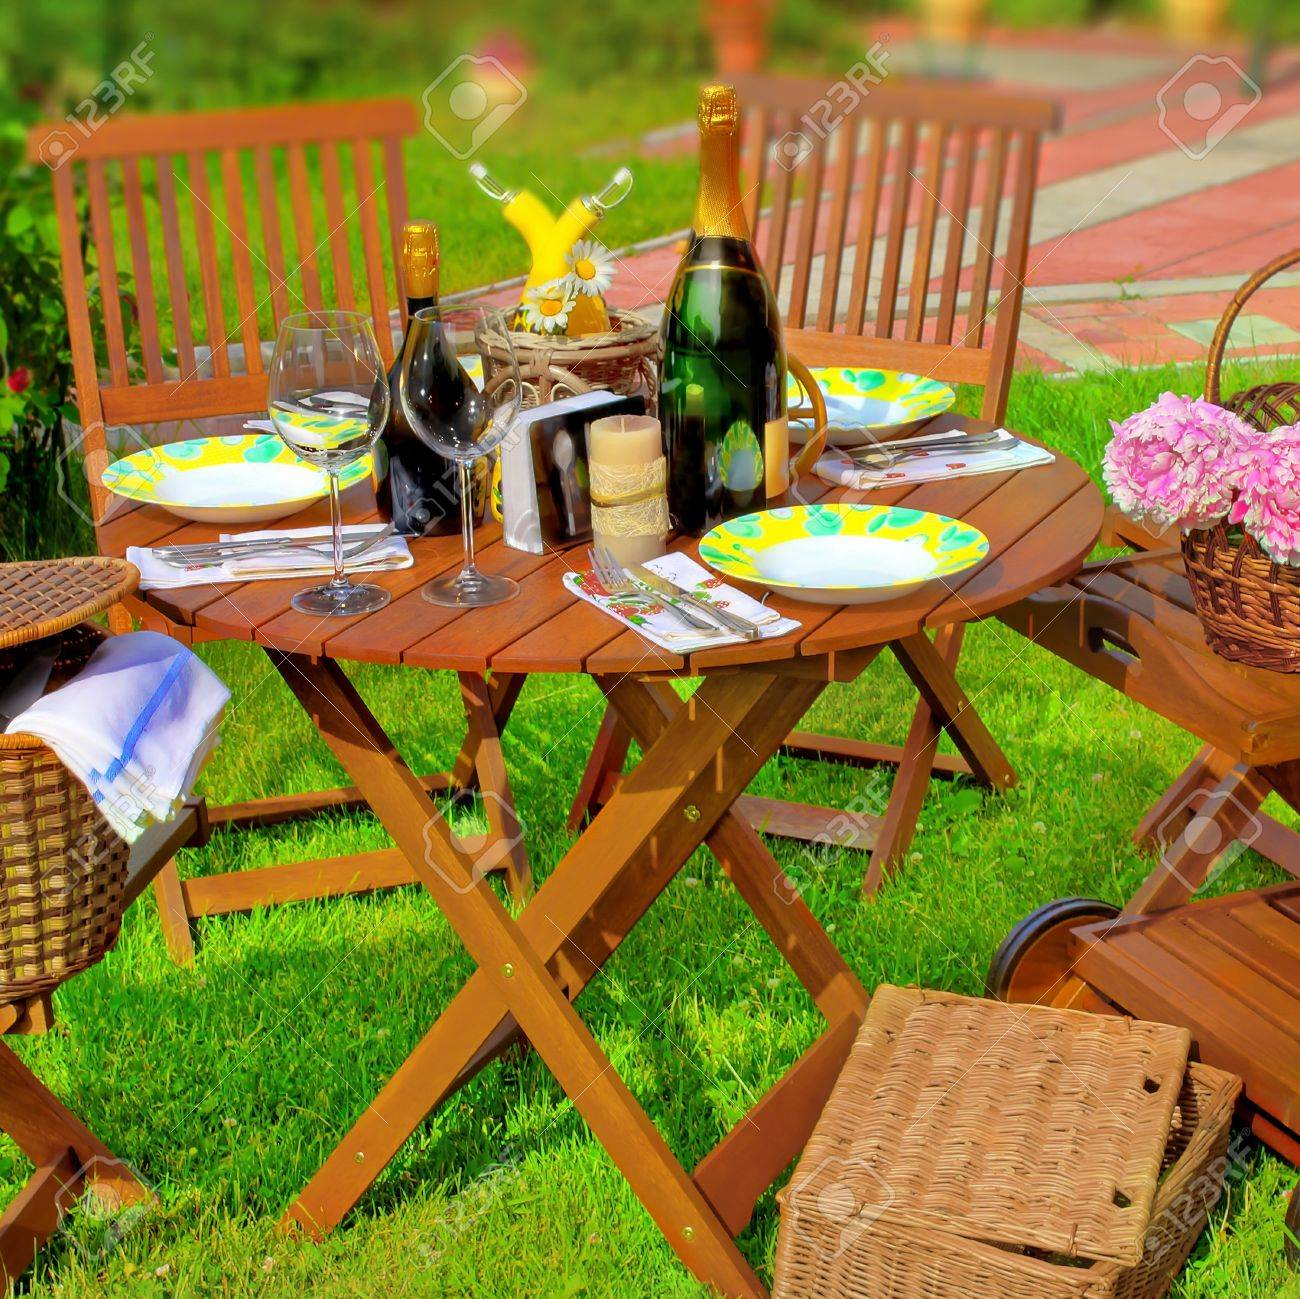 summer garden party outdoor dining scene tilt shift effect